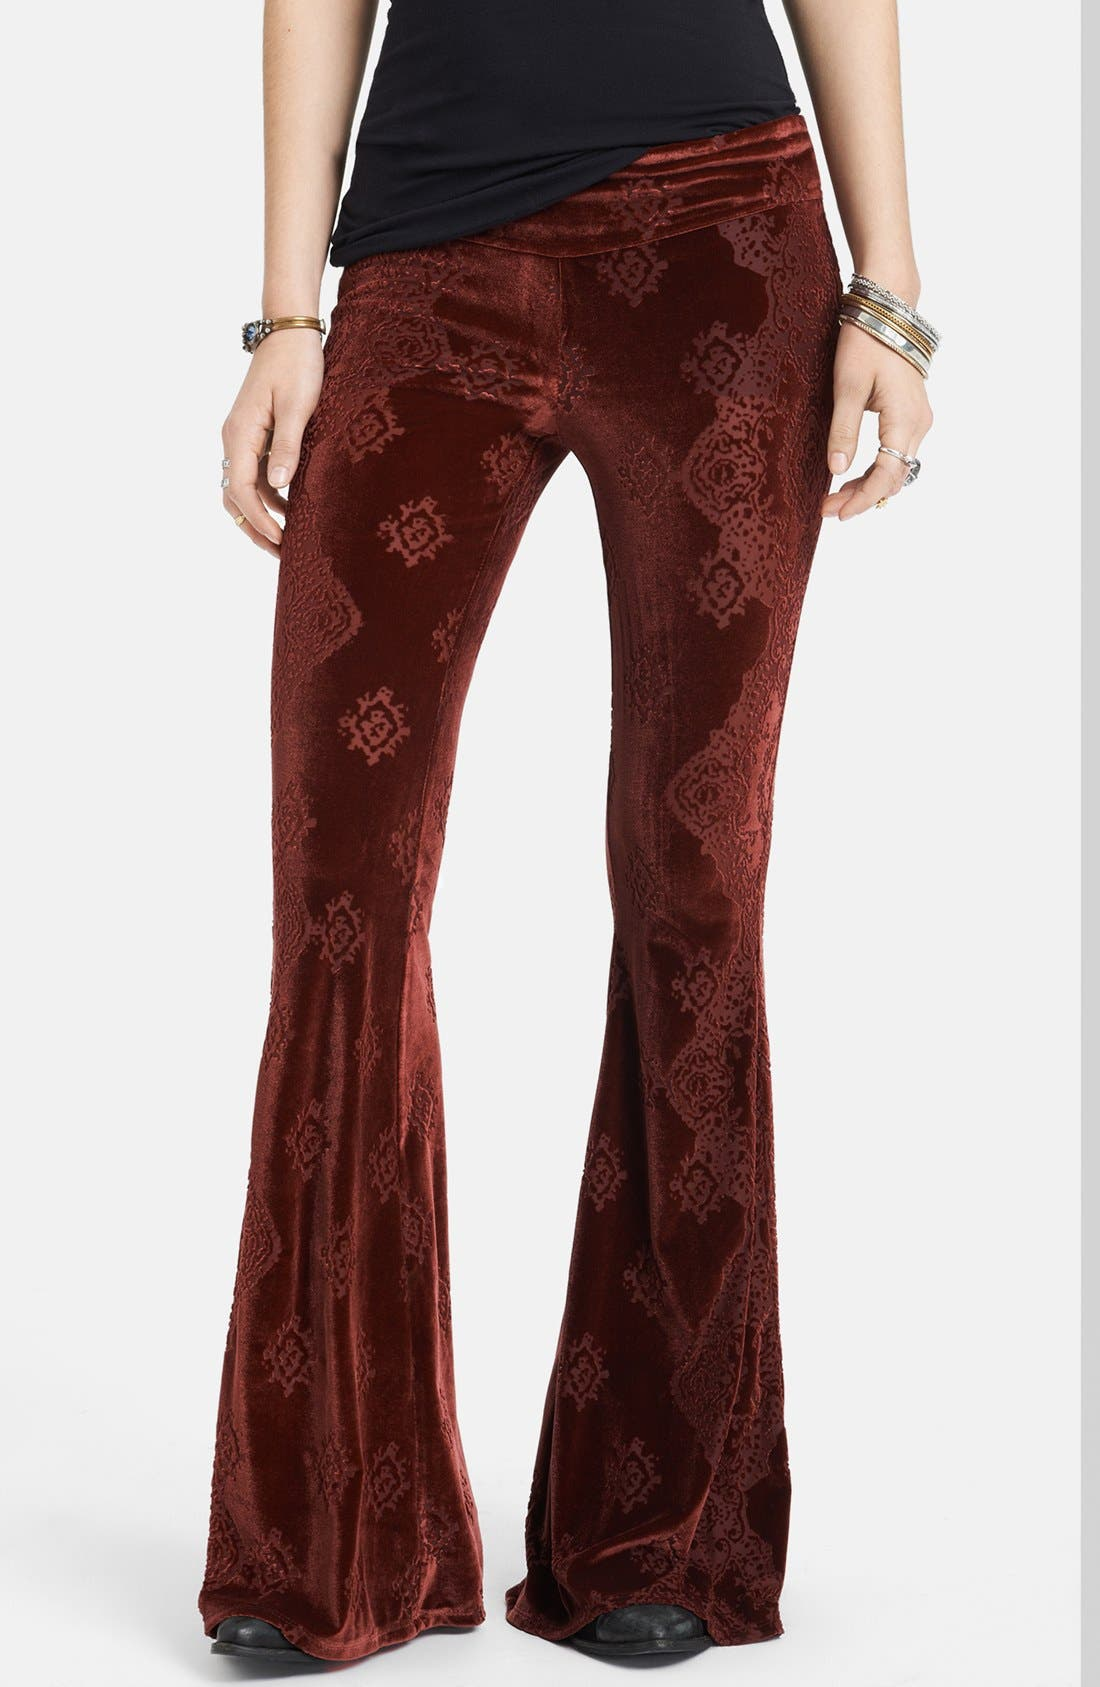 Main Image - Free People Patterned Velvet Flared Pants